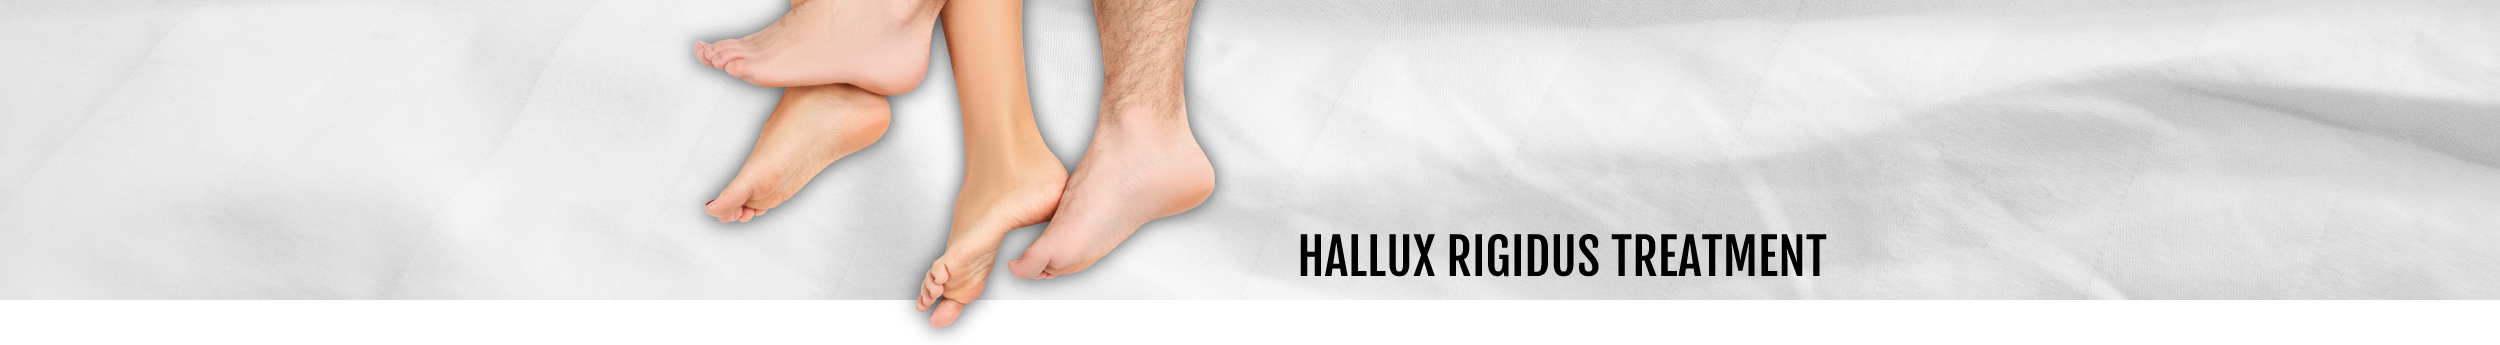 Hallux Rigidus treatment header for the Walk IN Foot Clinic in central London